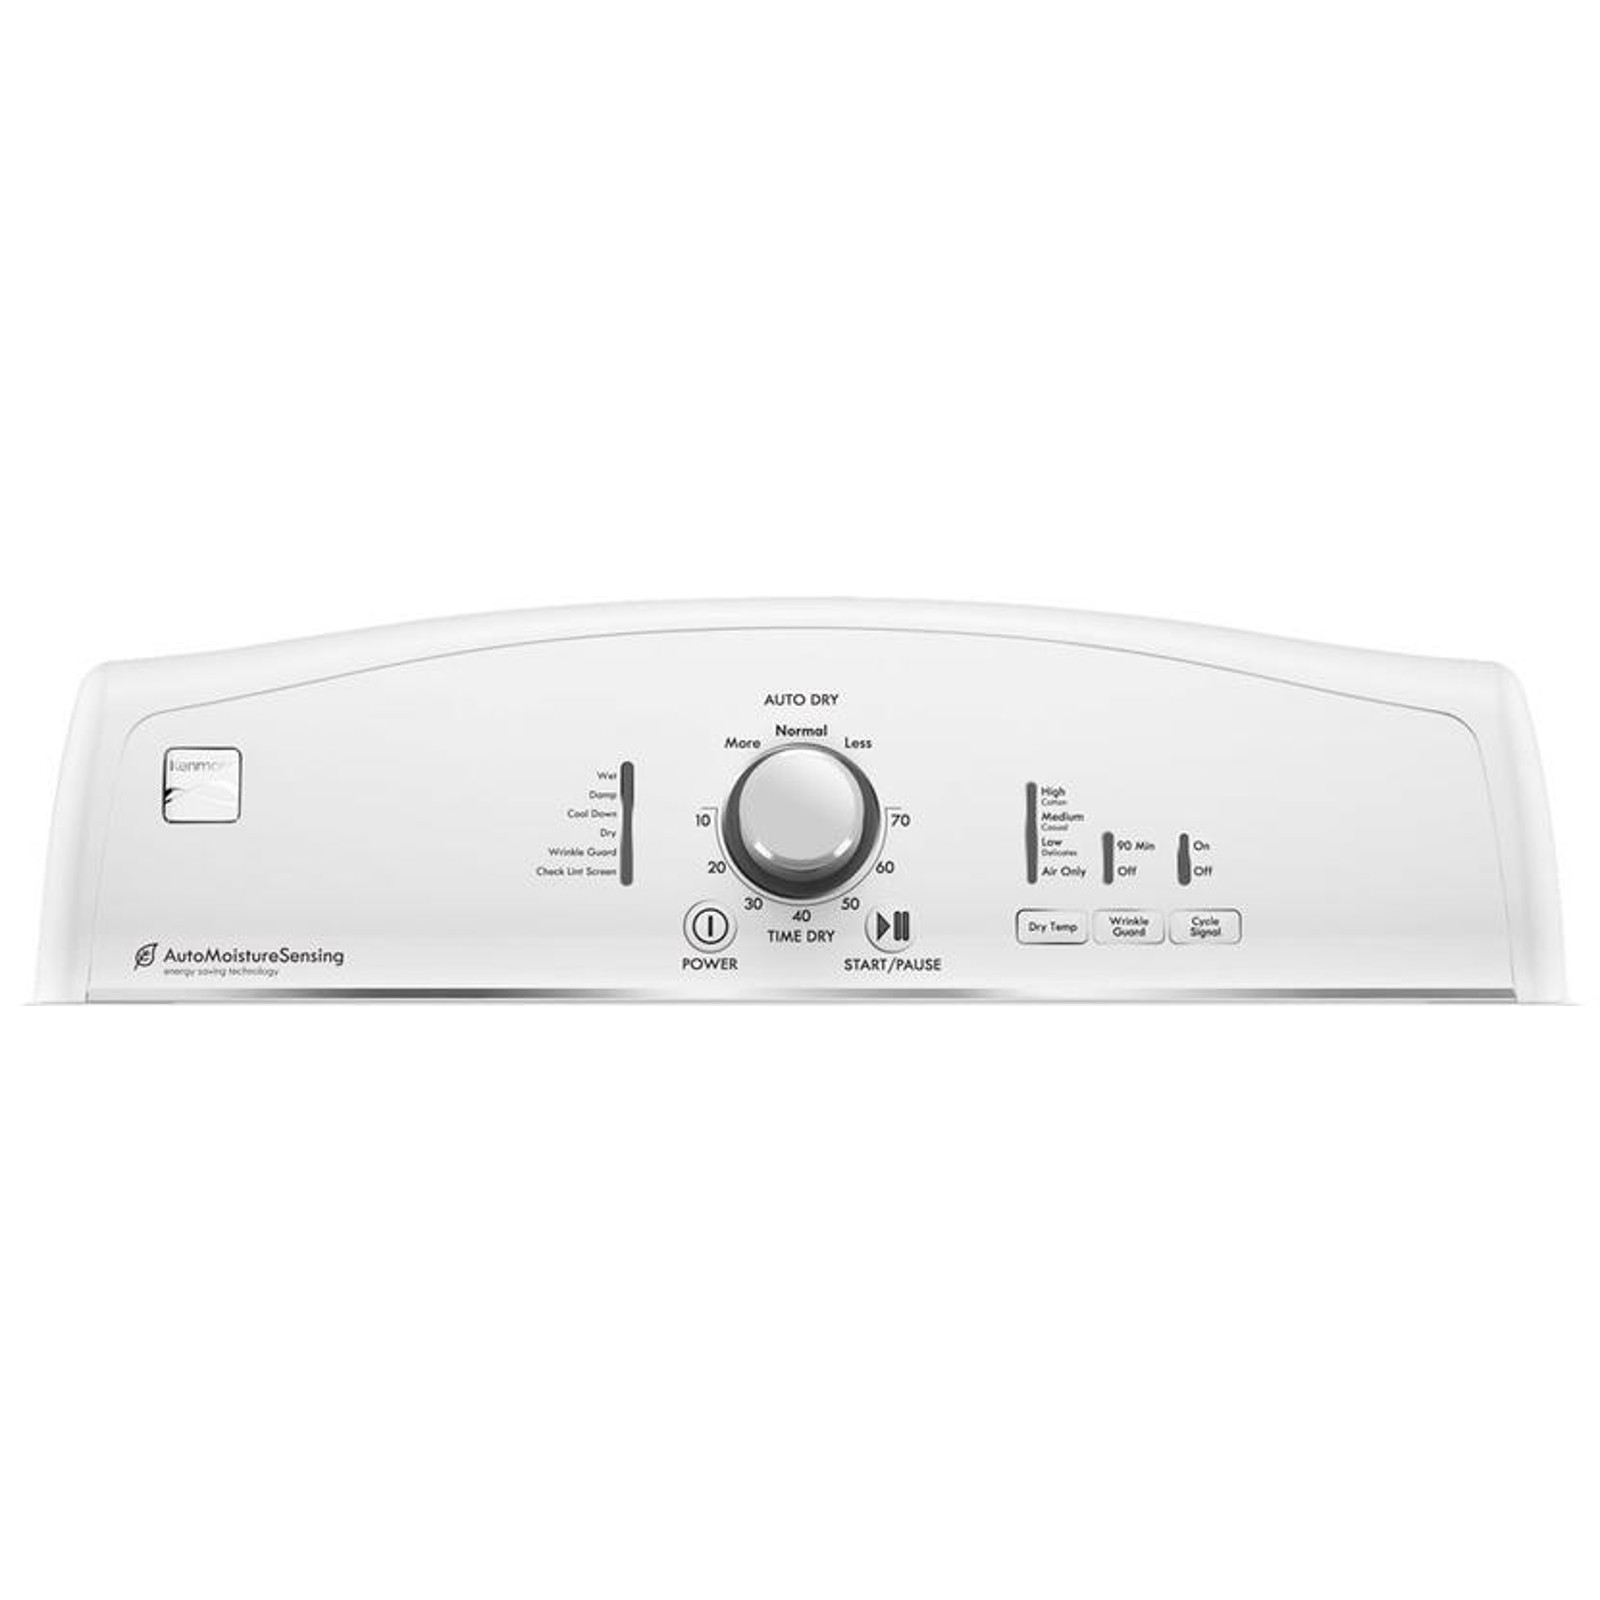 Kenmore 66002 7.5 cu. ft. Electric Dryer - White